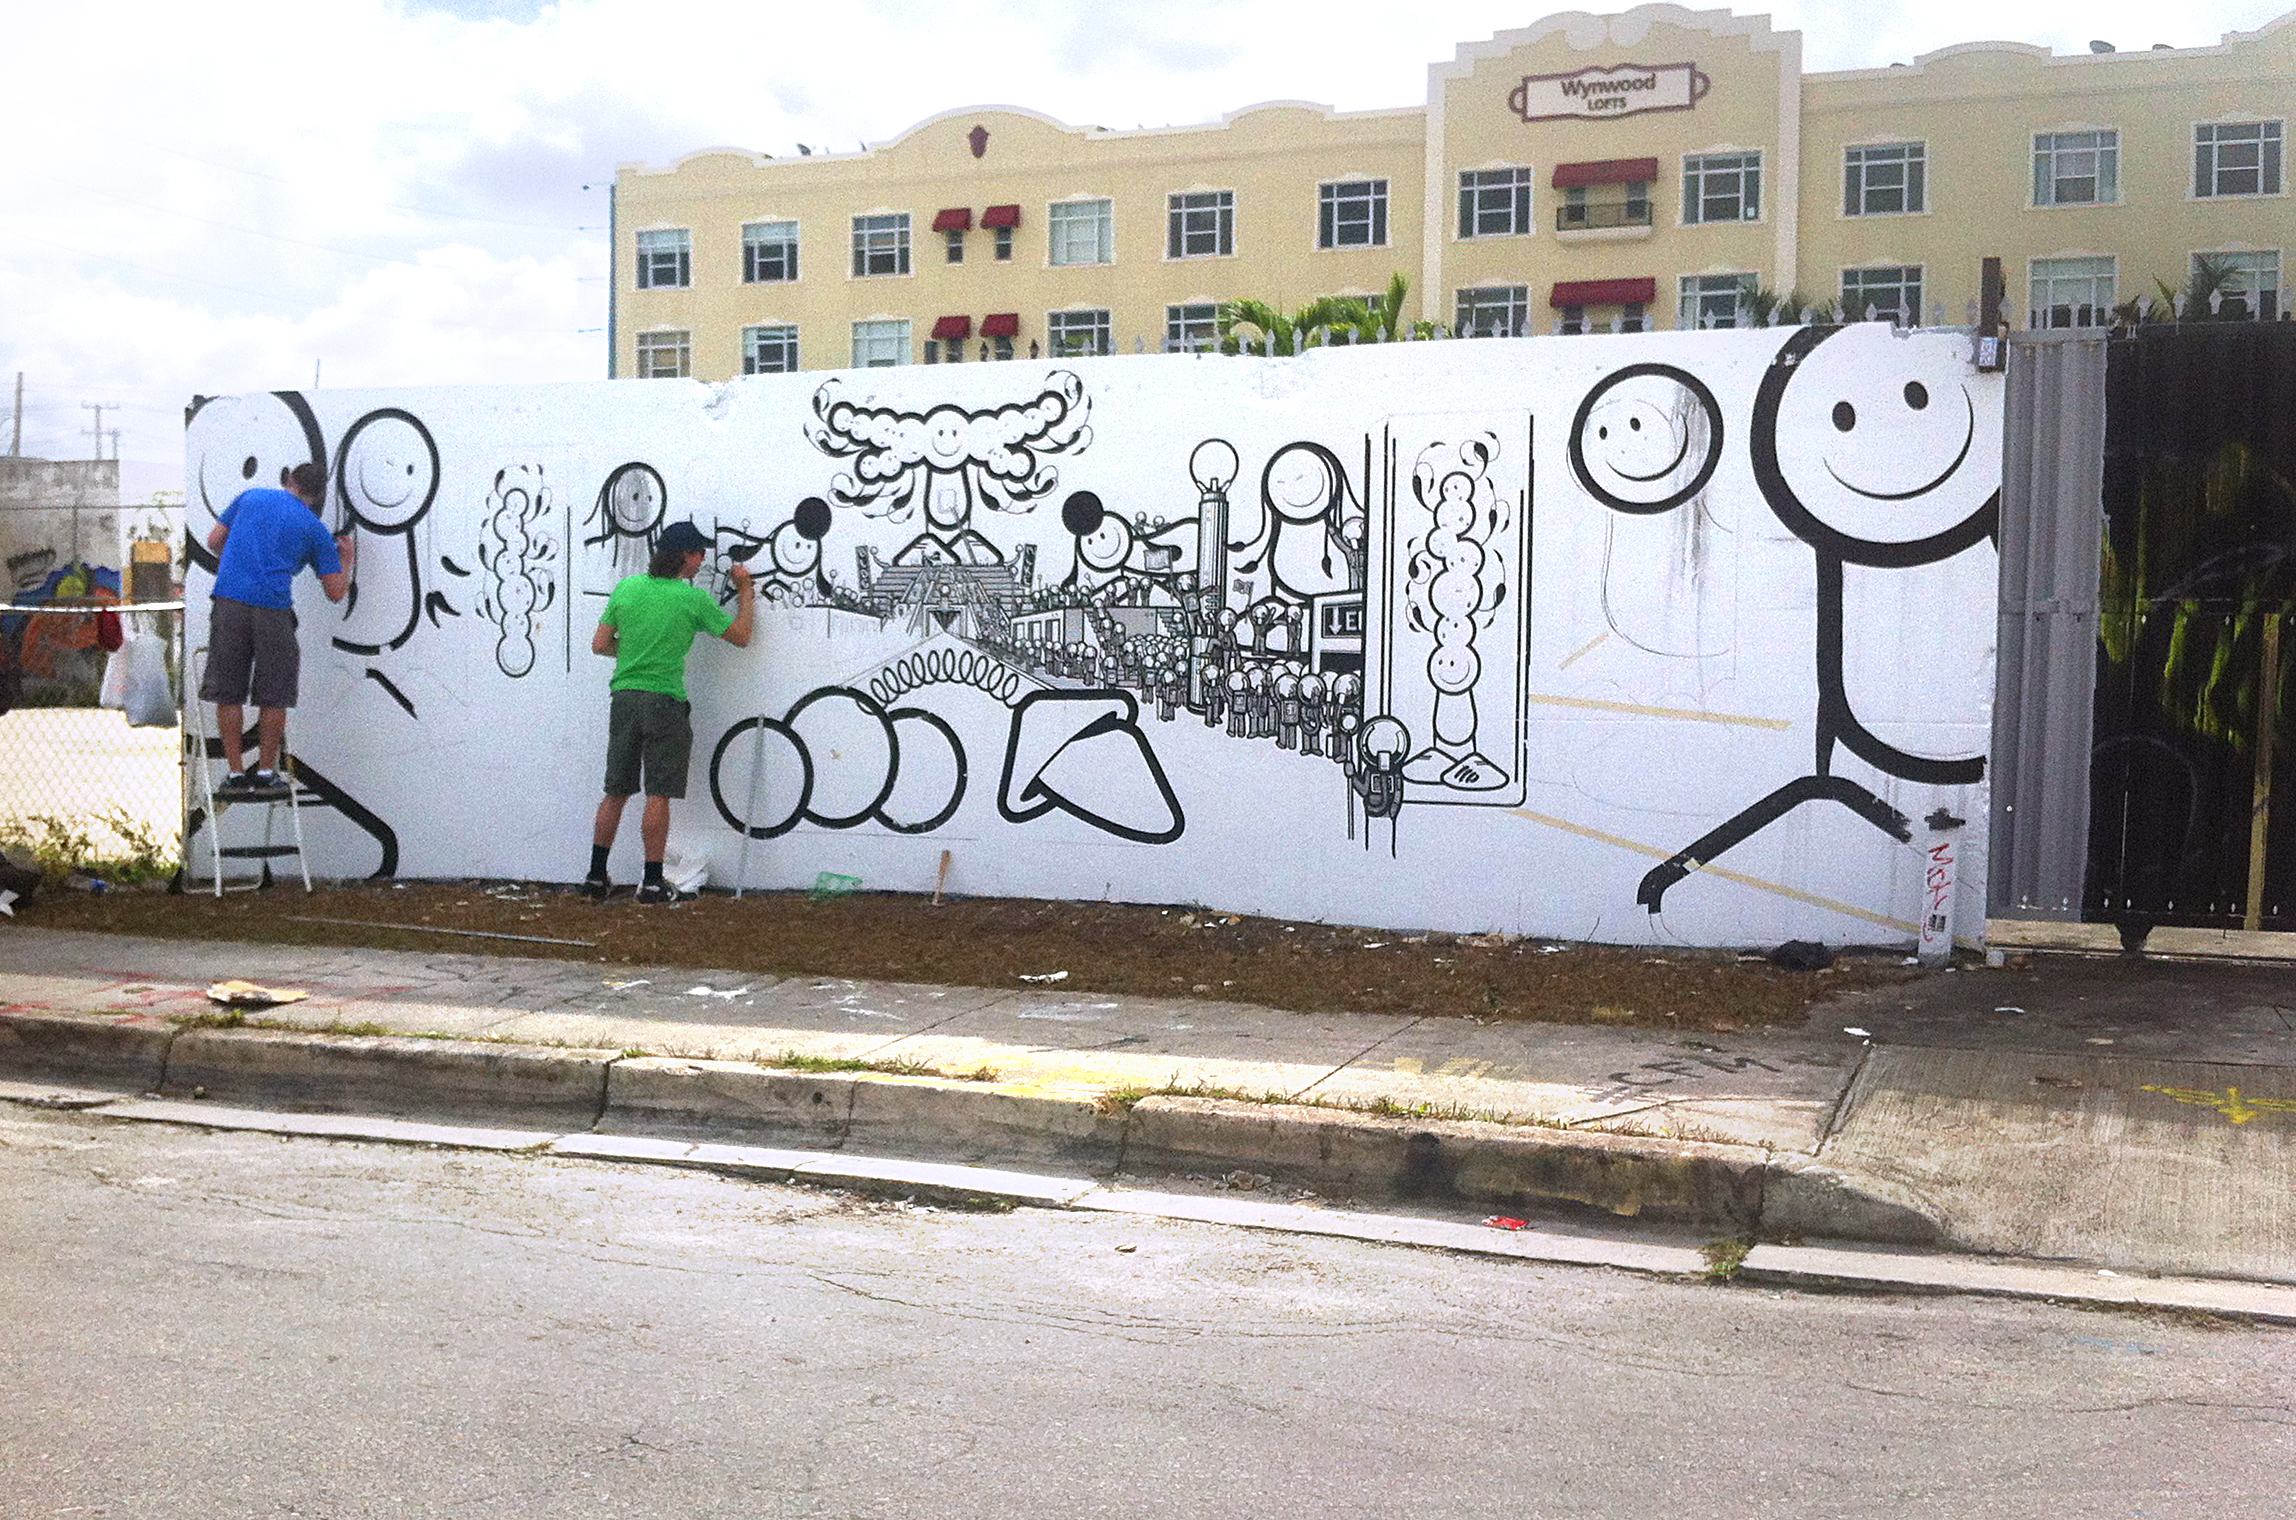 The London Police at work on their Wynwood mural in Miami